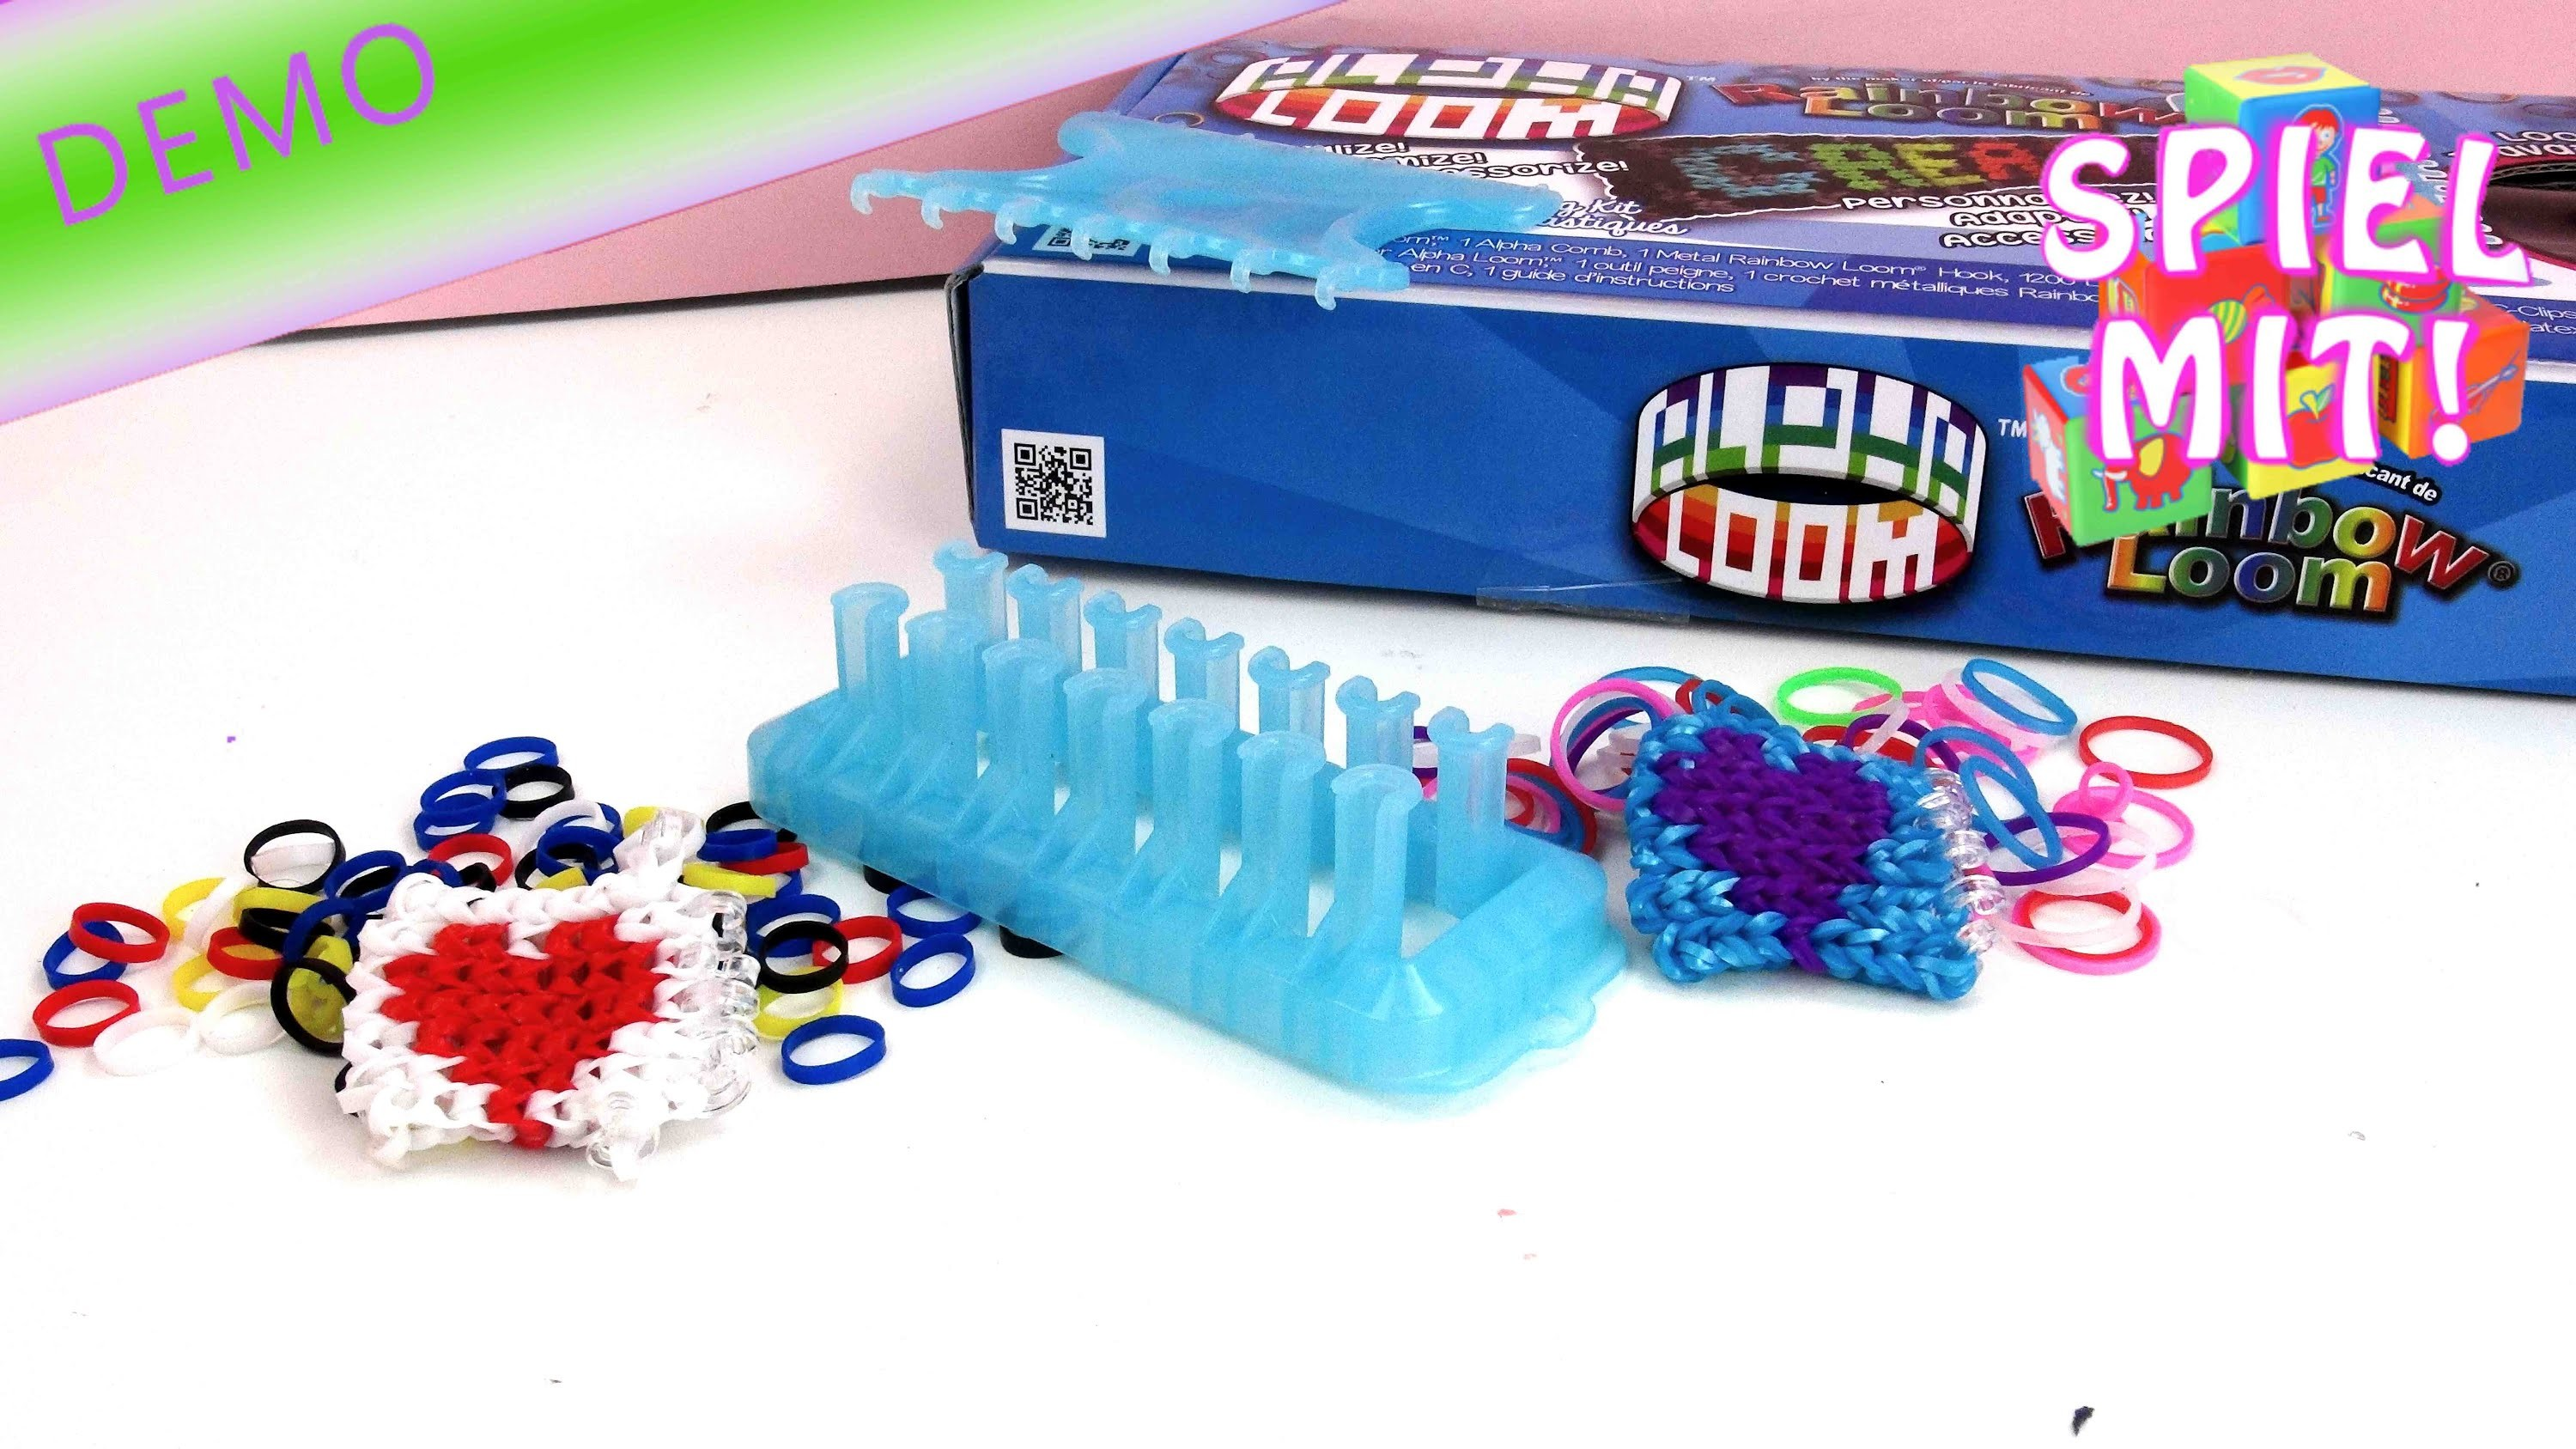 Rainbow loom webrahmen deutsch - Alpha Loom Bands Vergleich mit Rainbow Loom Bands